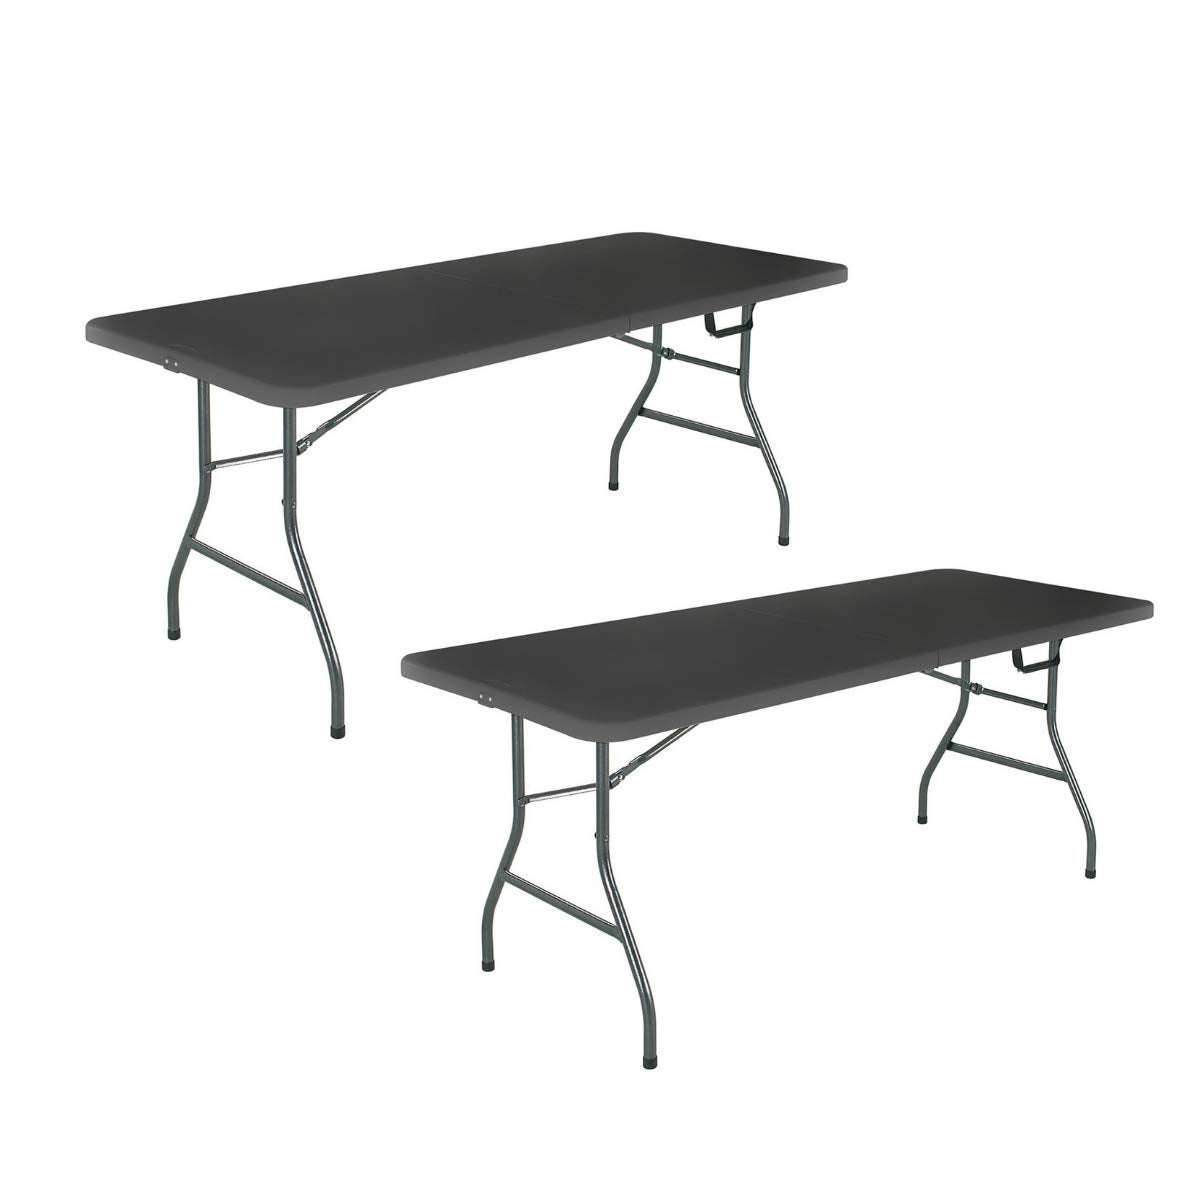 Camande 14678BLK1 Deluxe 6 Foot x 30 inch Half Blow Molded Folding Table, Black, 72